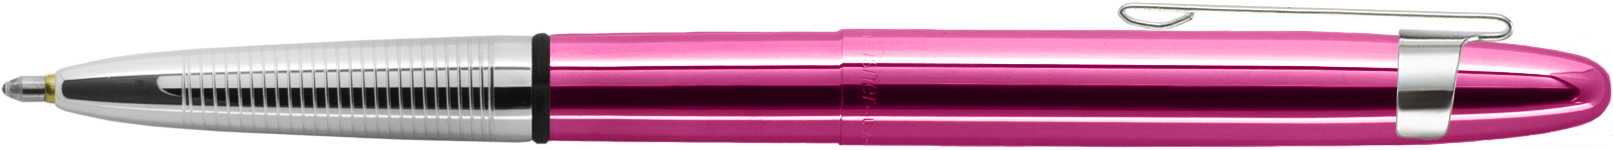 400FFCL - FISHER Fuchsia Flurry Translucent Bullet Space Pen w/ Chrome Clip Gift Boxed